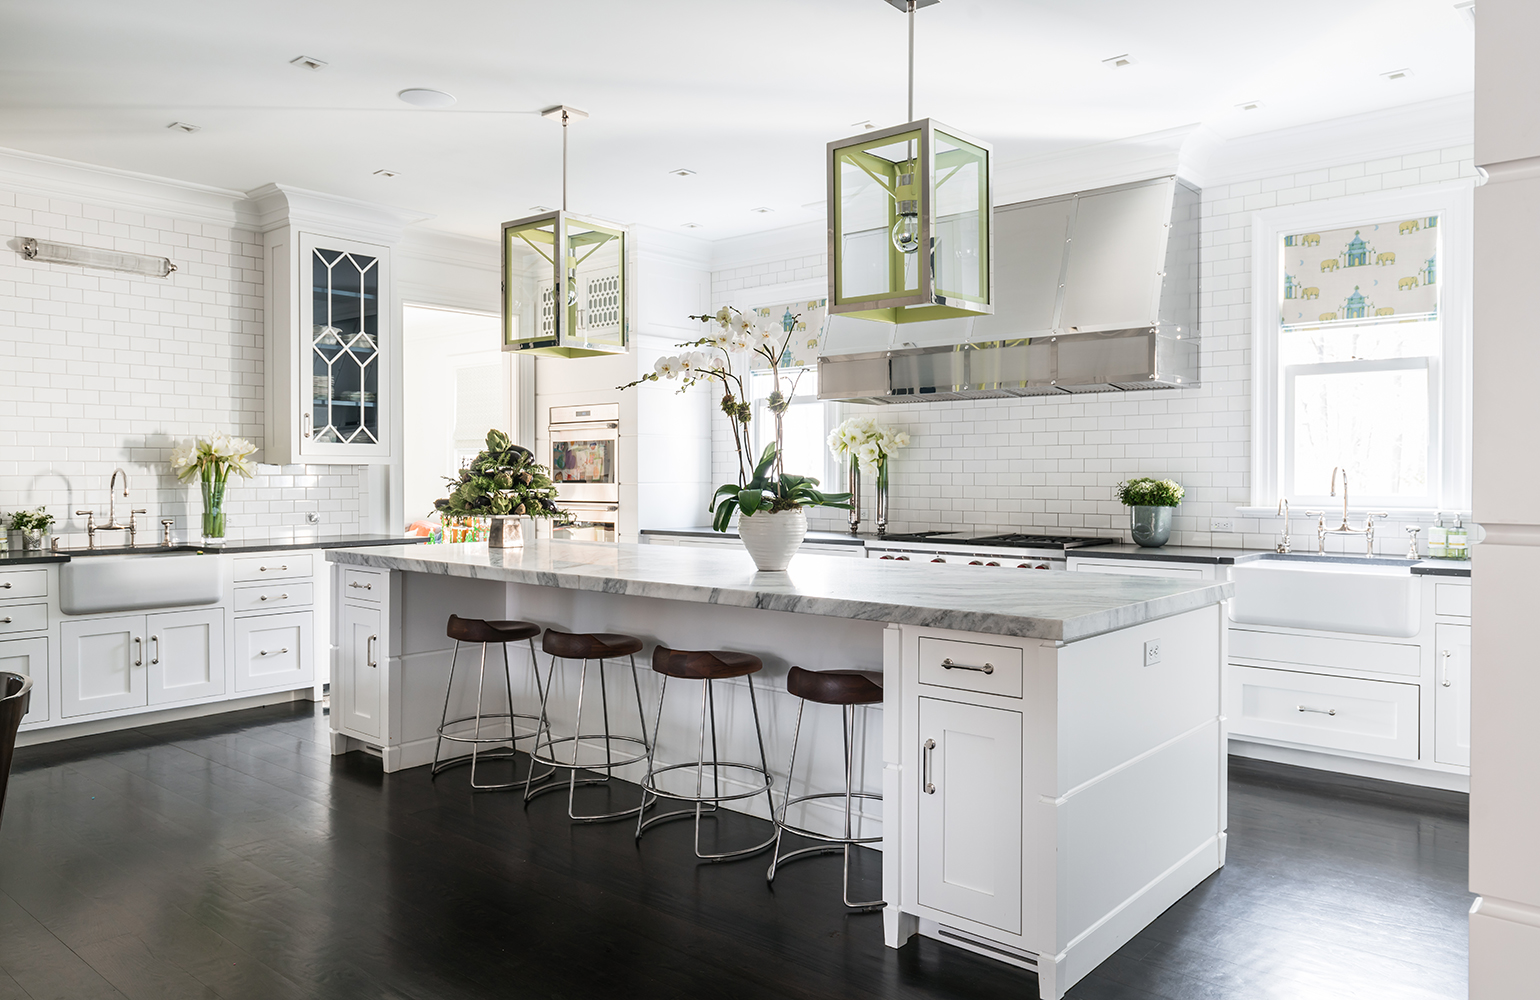 Kitchen Islands: inspiration to dream